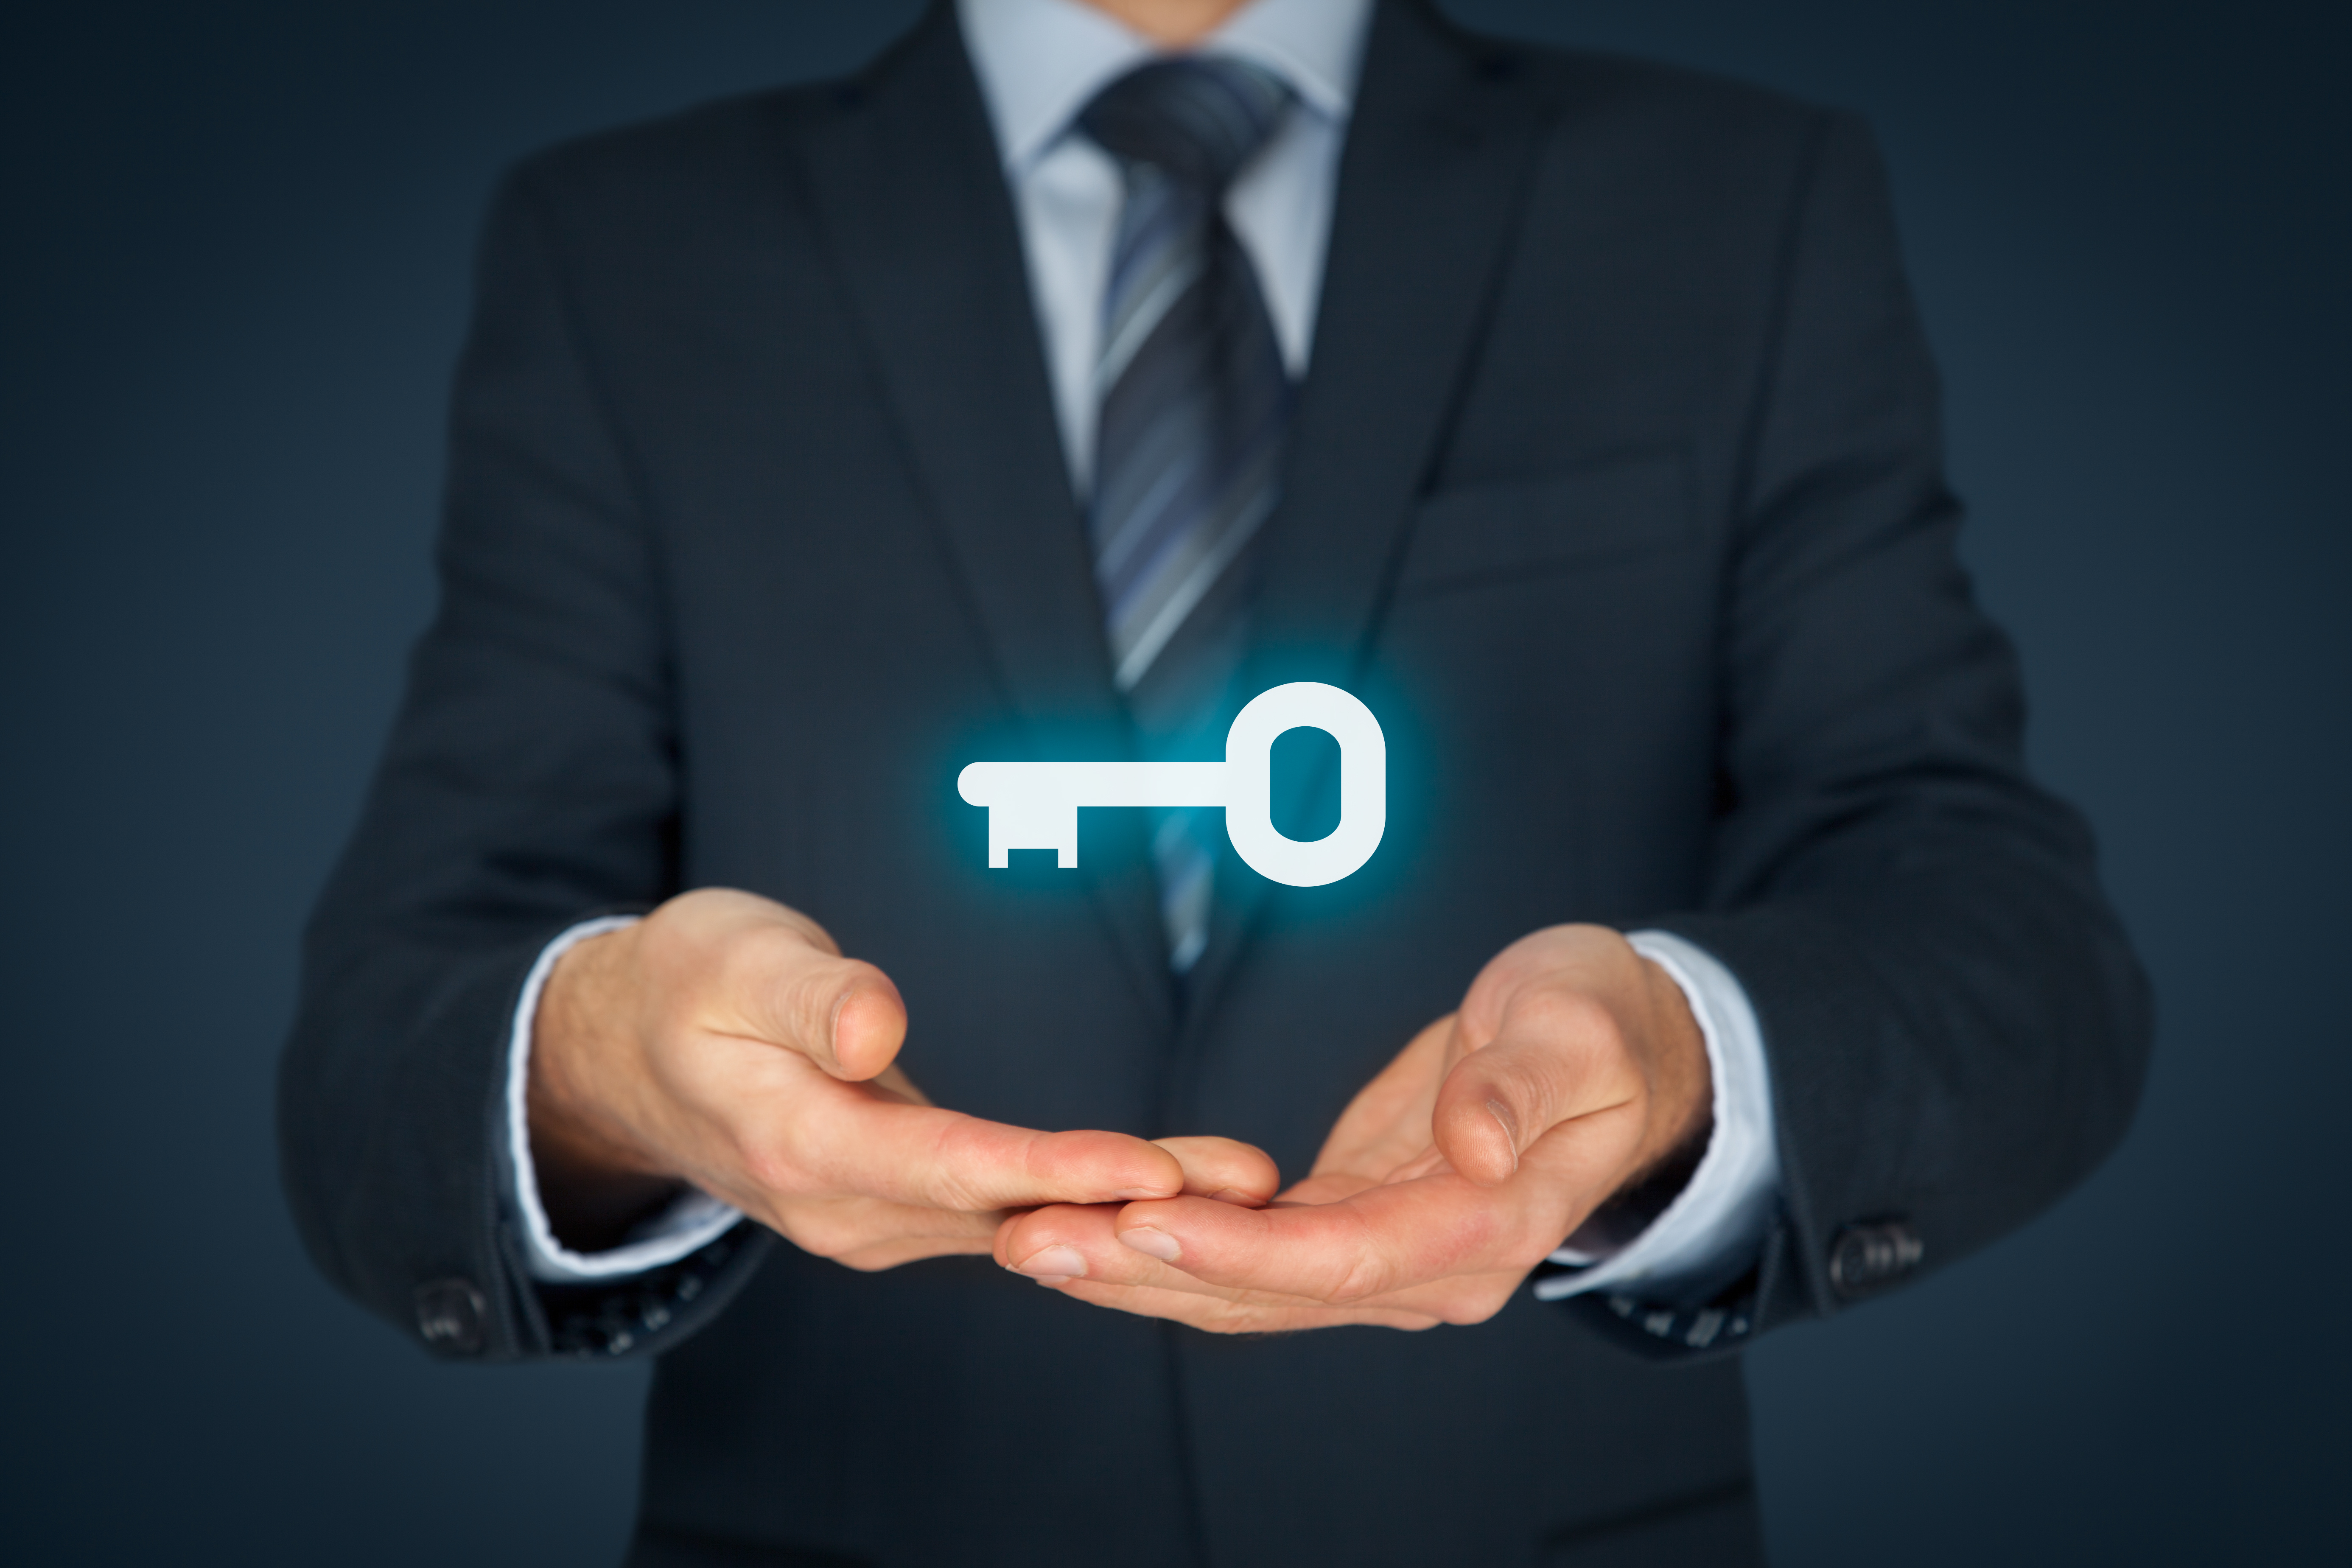 Turnkey Backup Solution: What Is It, and Does My Business Need It?